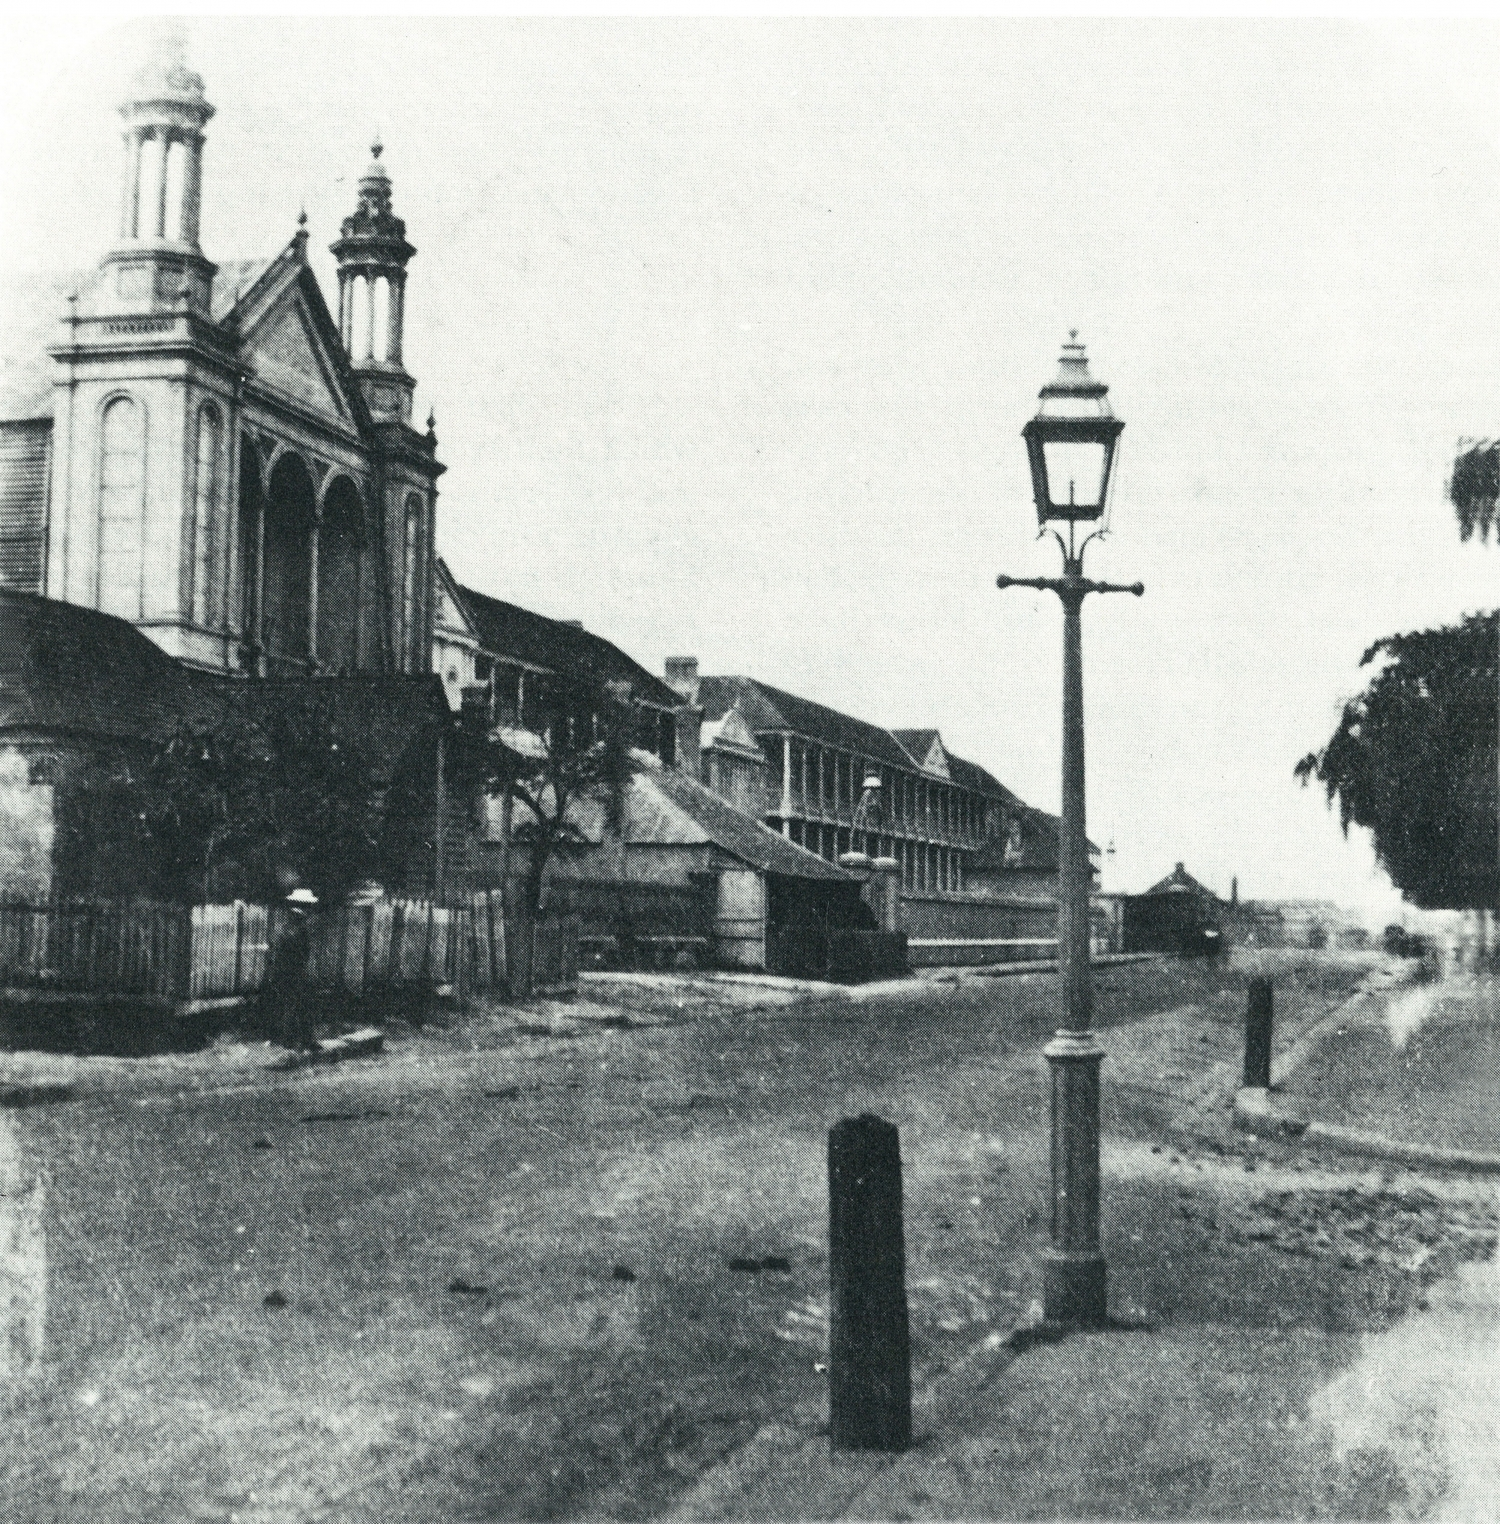 B/W photo of city street with large buildings, including a church lining one side and a footpath and street light on the opposite side.